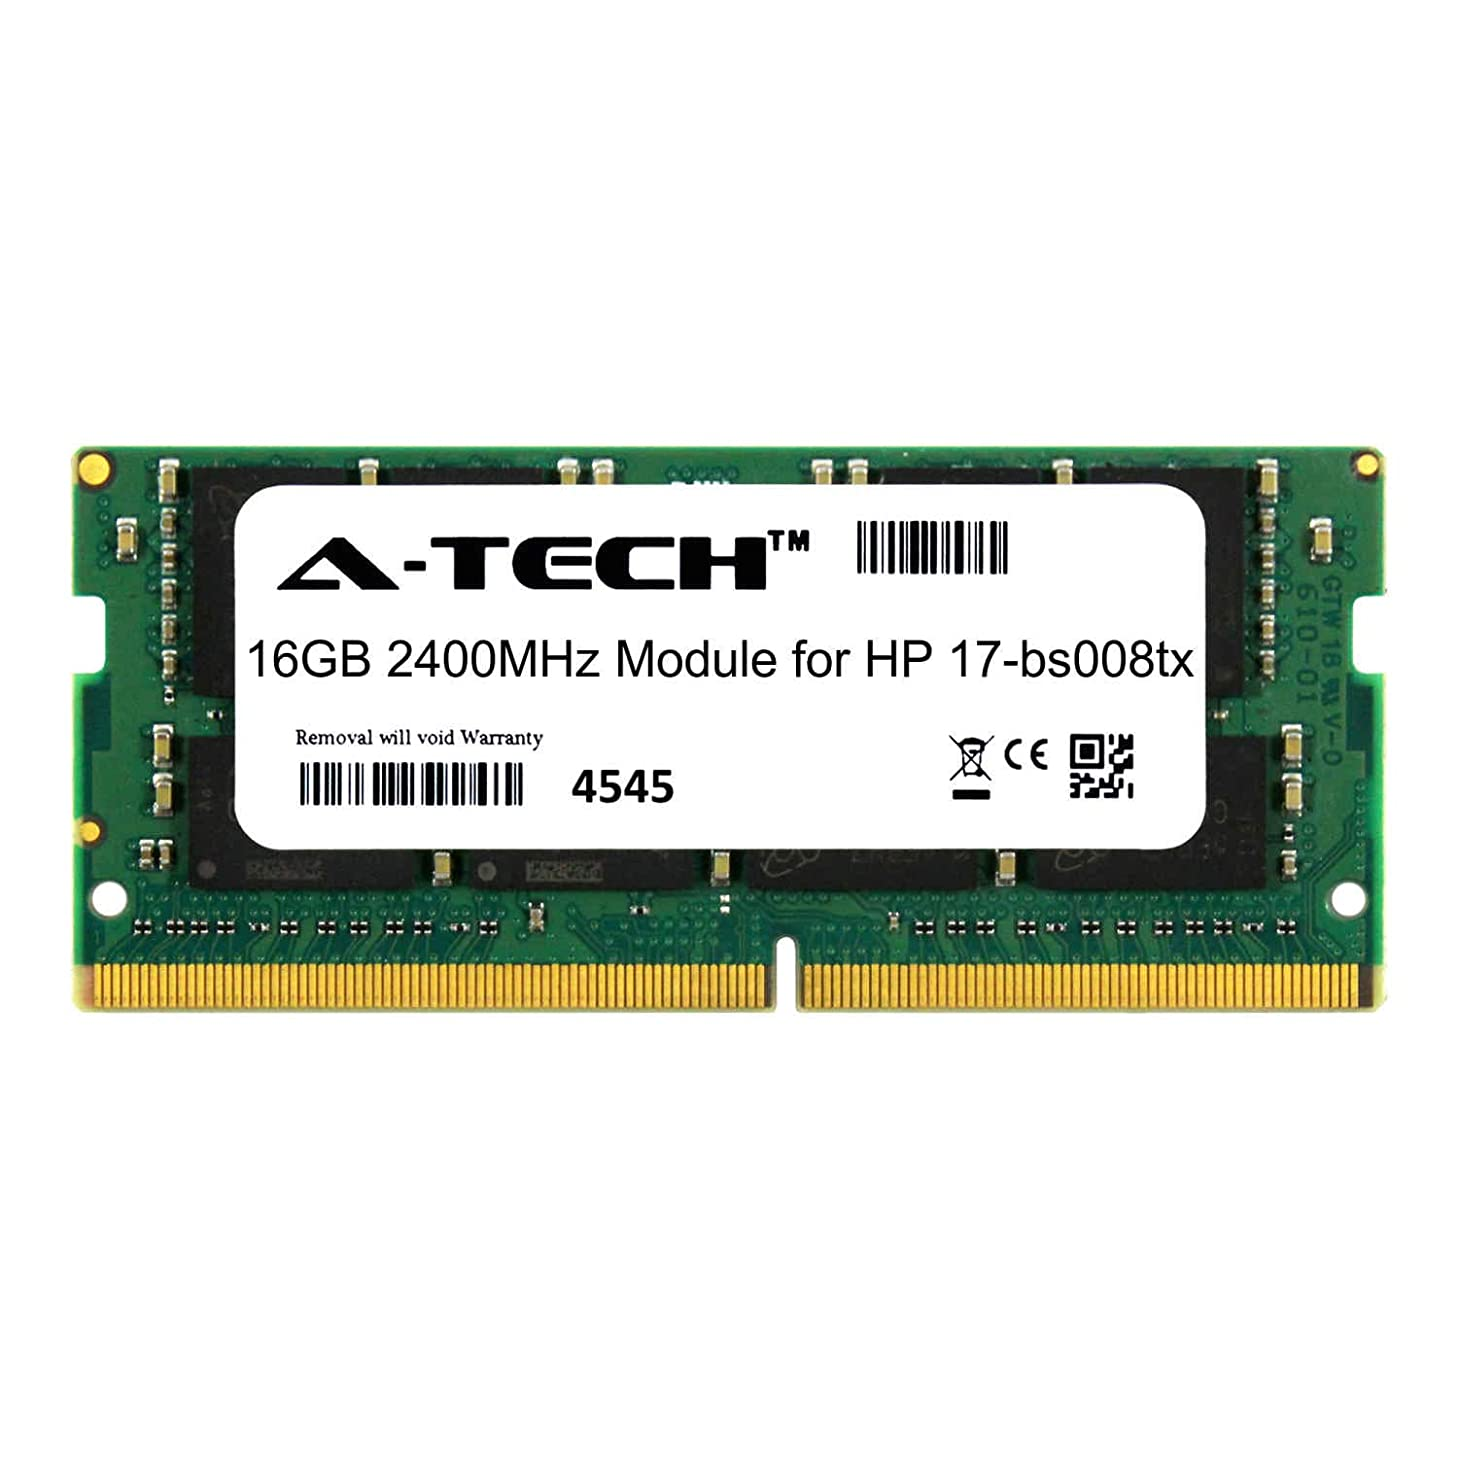 A-Tech 16GB Module for HP 17-bs008tx Laptop & Notebook Compatible DDR4 2400Mhz Memory Ram (ATMS382508A25831X1)